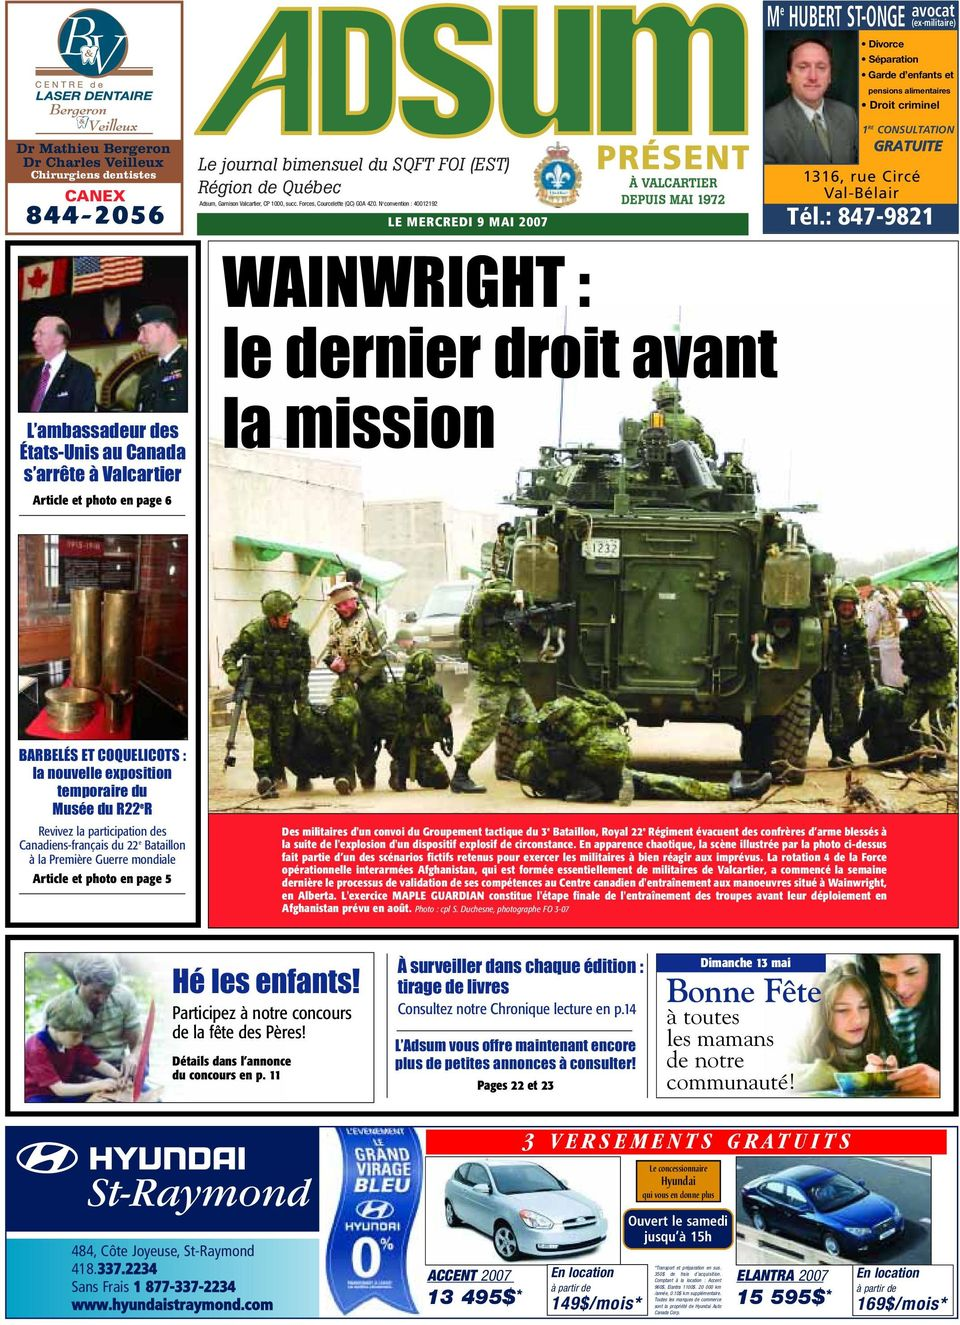 N o convention : 40012192 LE MERCREDI 9 MAI 2007 WAINWRIGHT : le dernier droit avant la mission M e HUBERT ST-ONGE avocat (ex-militaire) Divorce Séparation Garde d enfants et pensions alimentaires